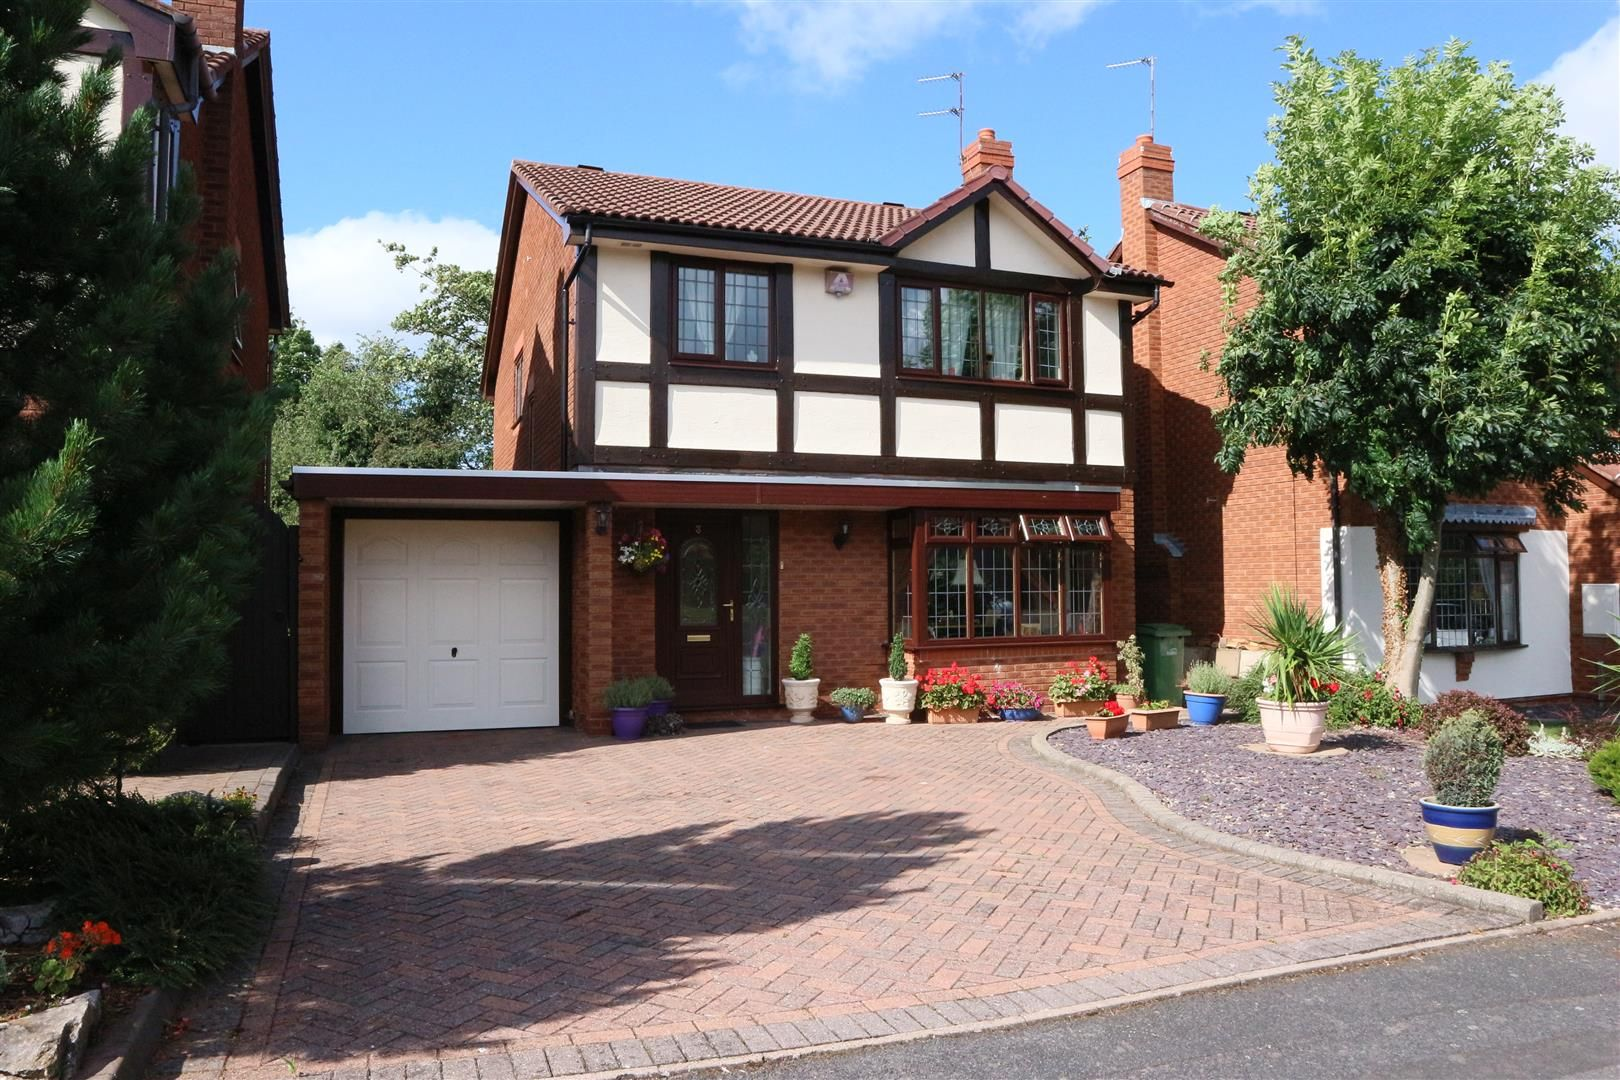 4 bed detached for sale, DY6